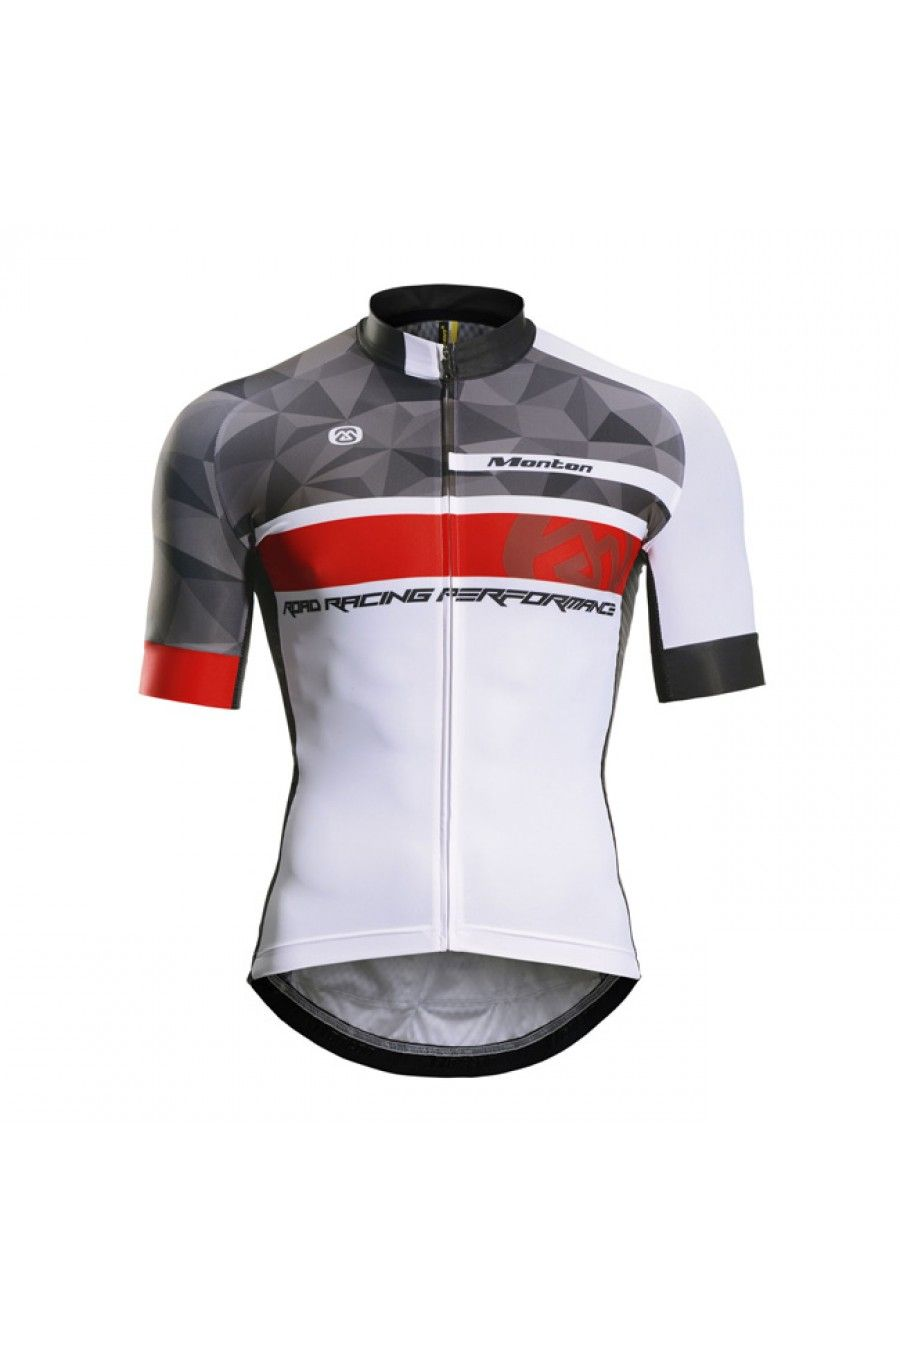 unique cycling jersey | Cycling outfit, Unique cycling